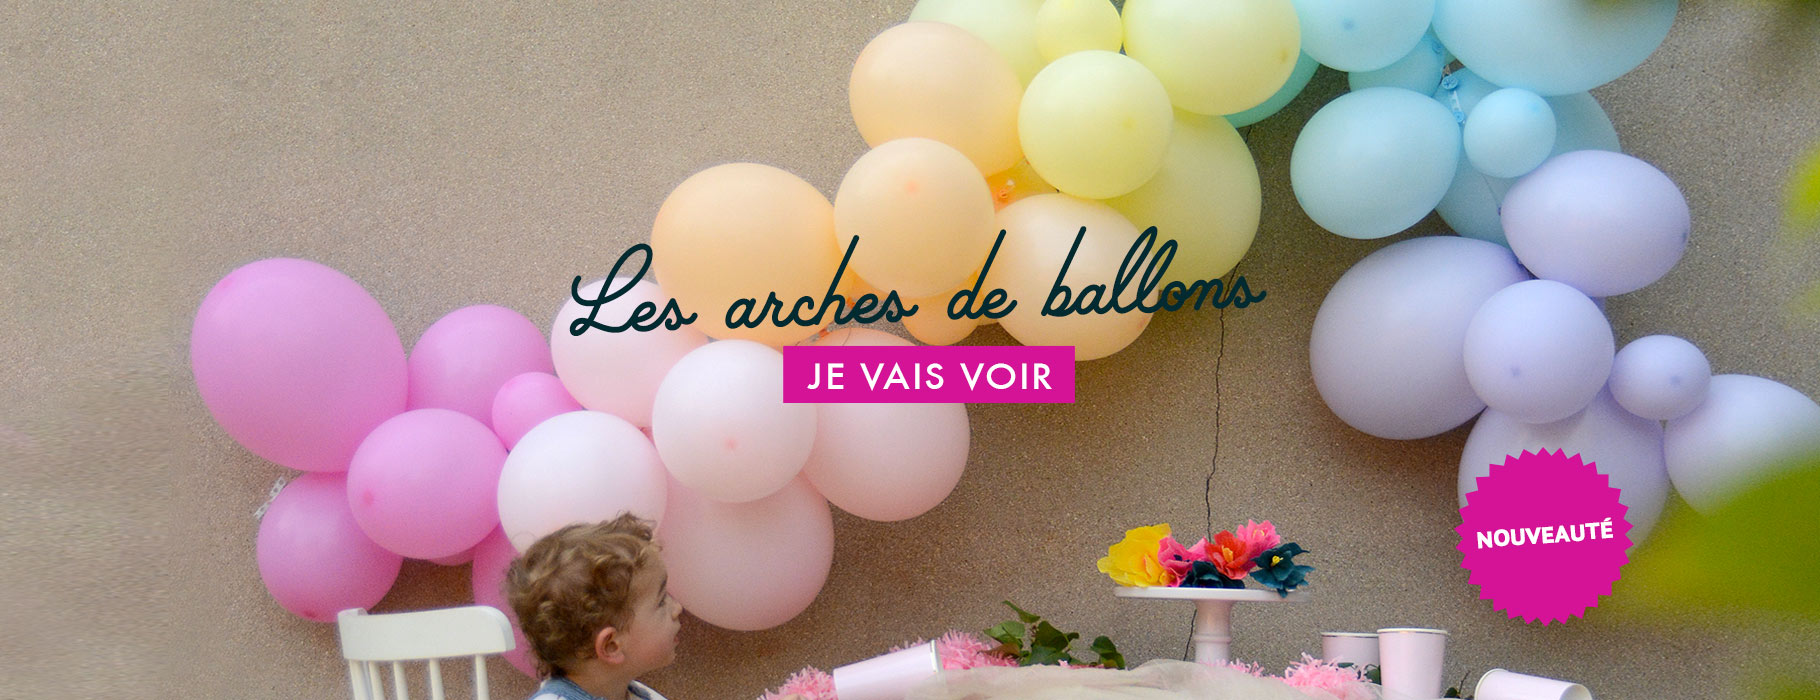 Magasin De Decoration Fete Bordeaux Sweet Party Day Deco Et Article De Fête Anniversaire